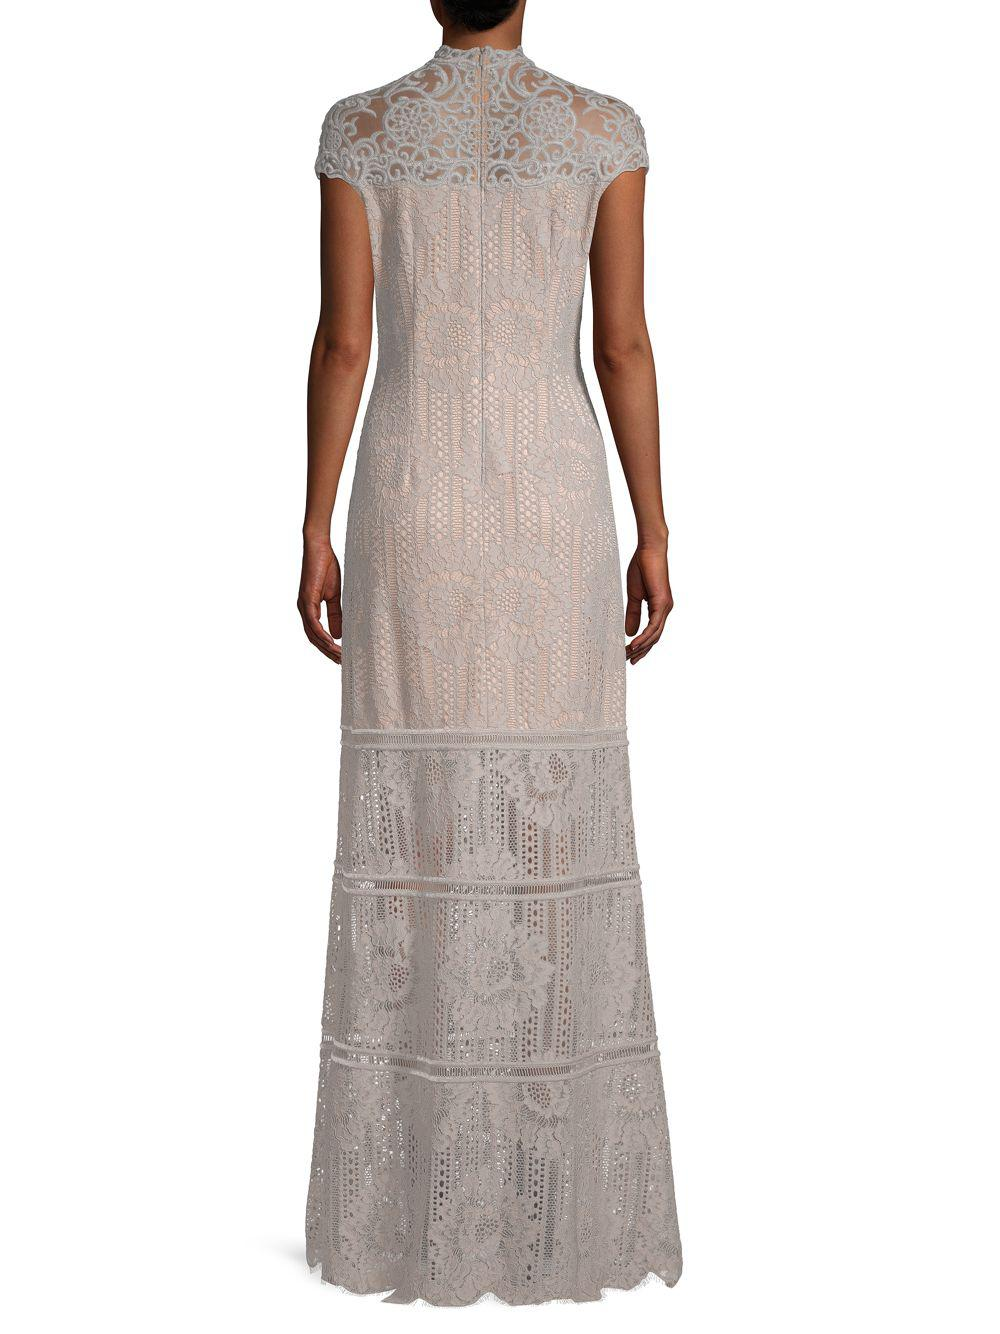 Lyst - Tadashi Shoji Embroidered Mesh Lace Gown